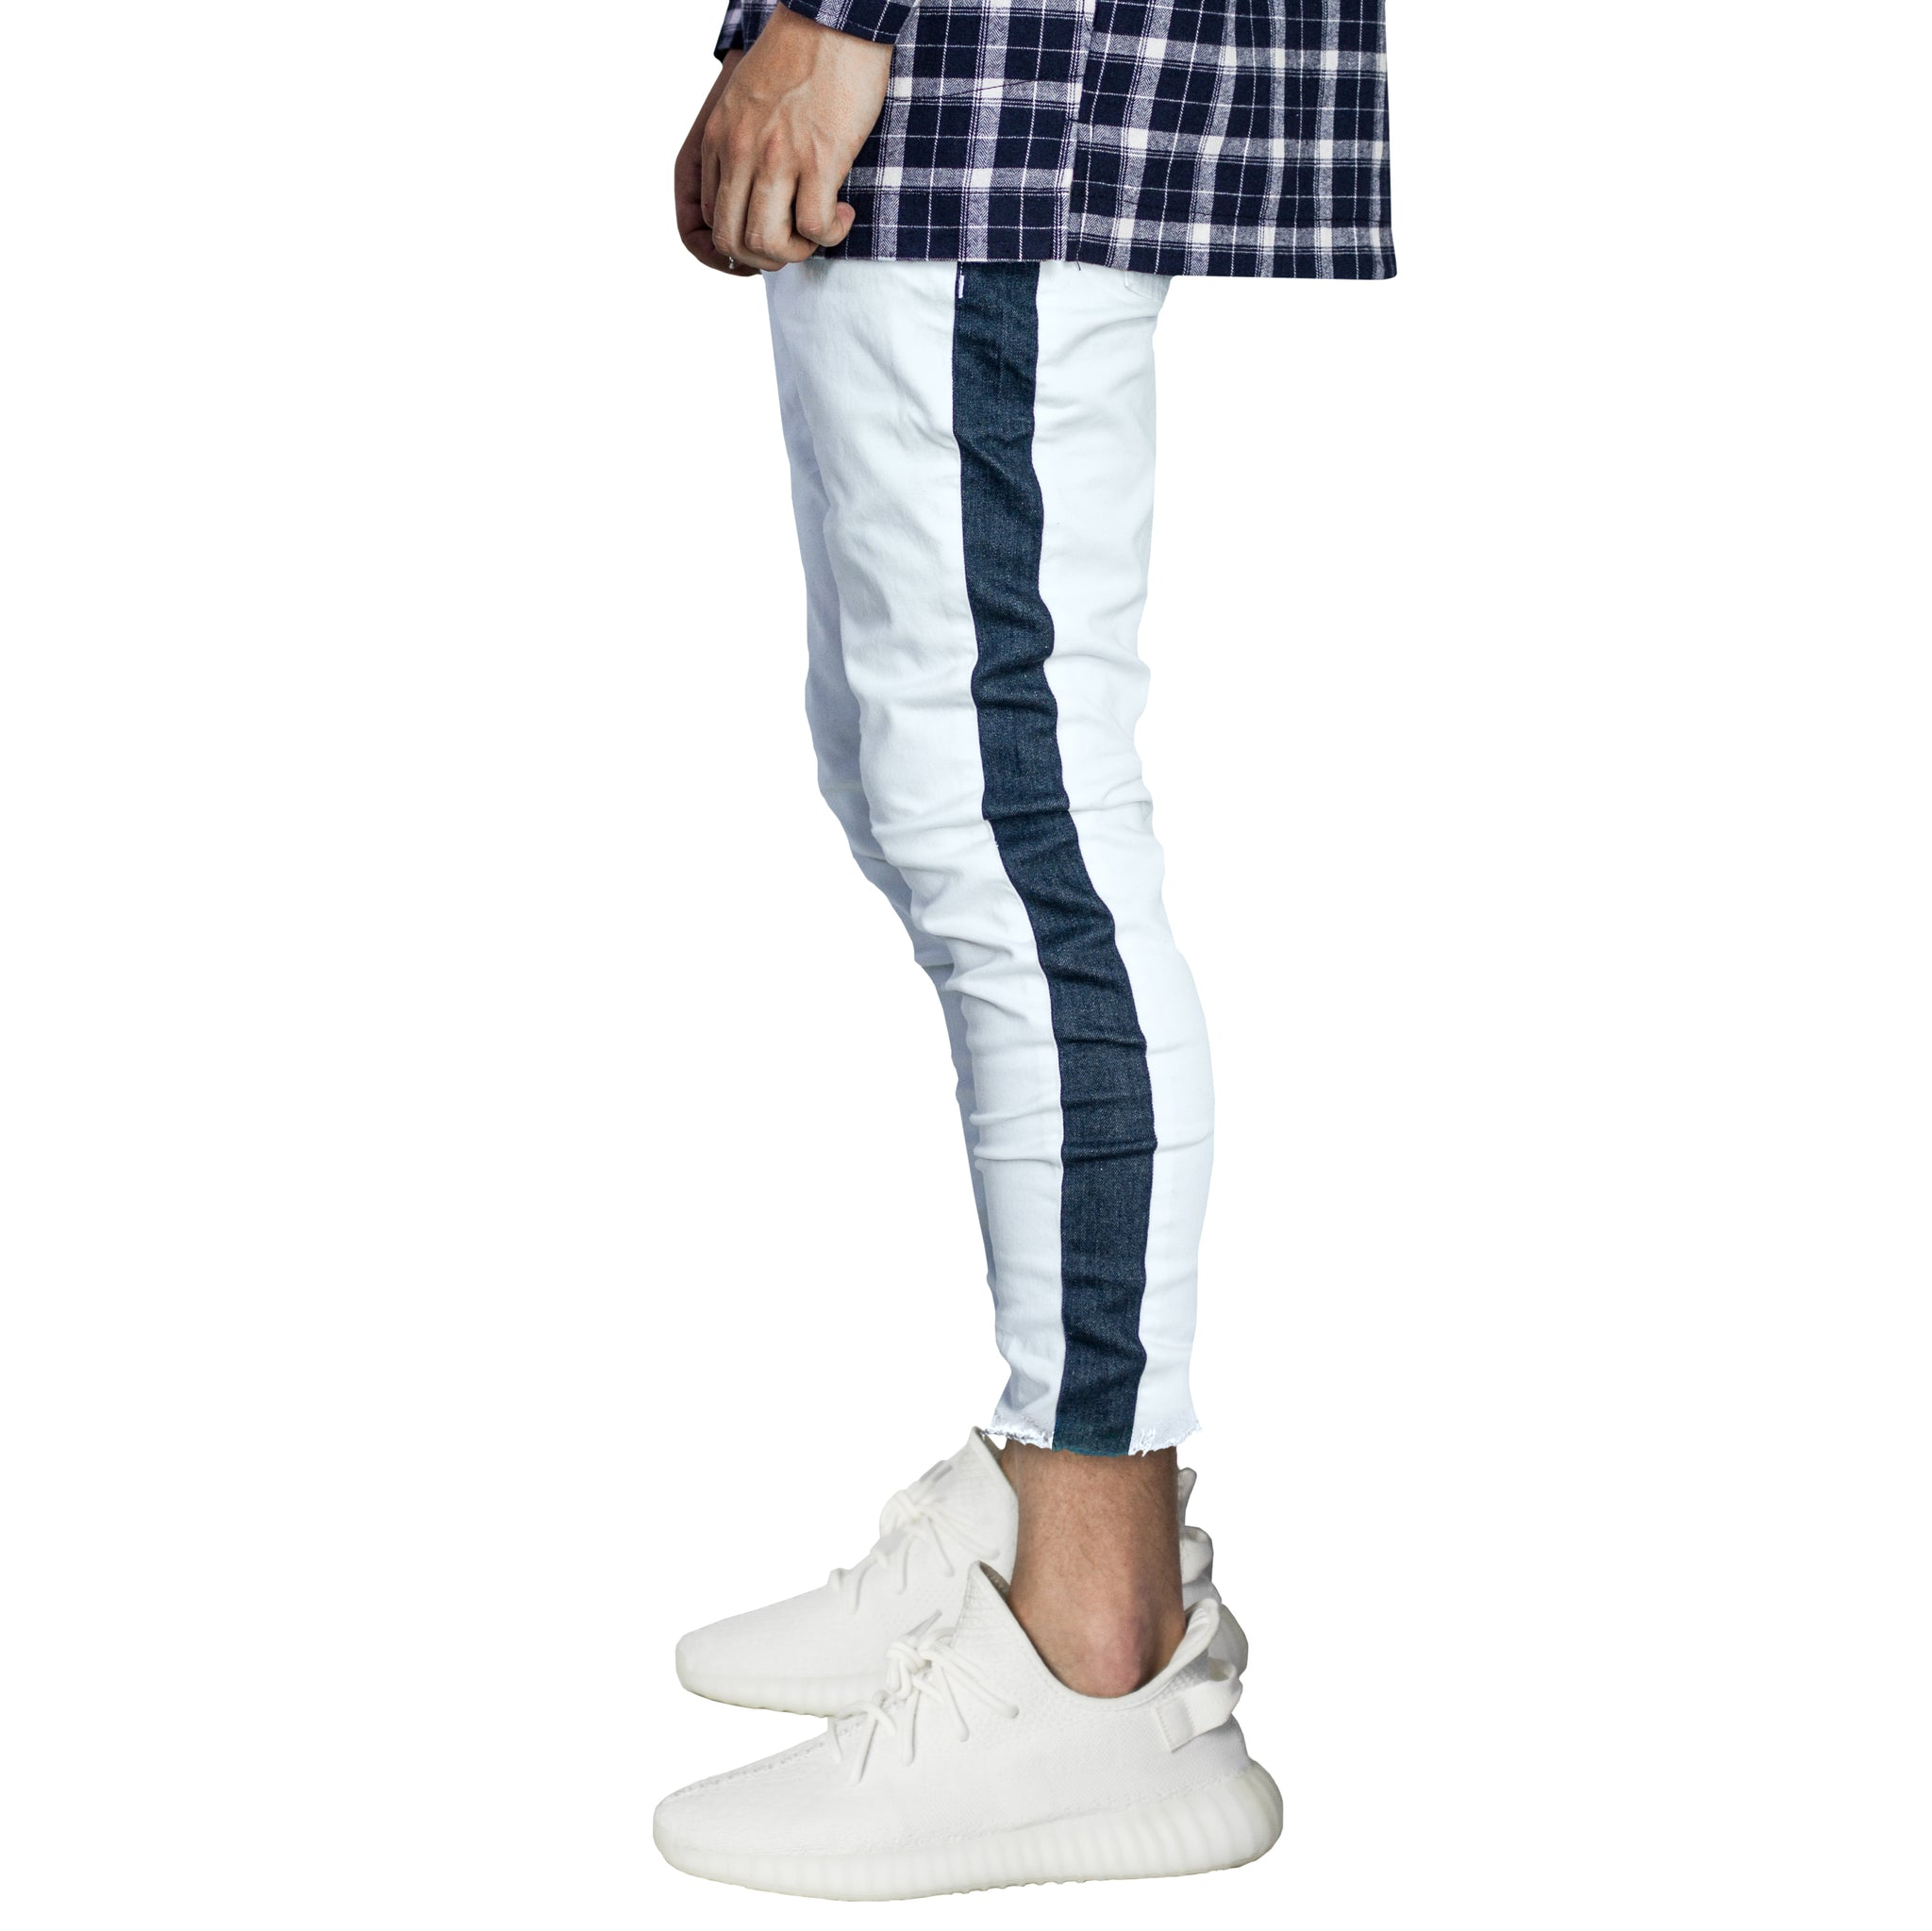 Cropped Track Jeans : Blue Tint/Indigo